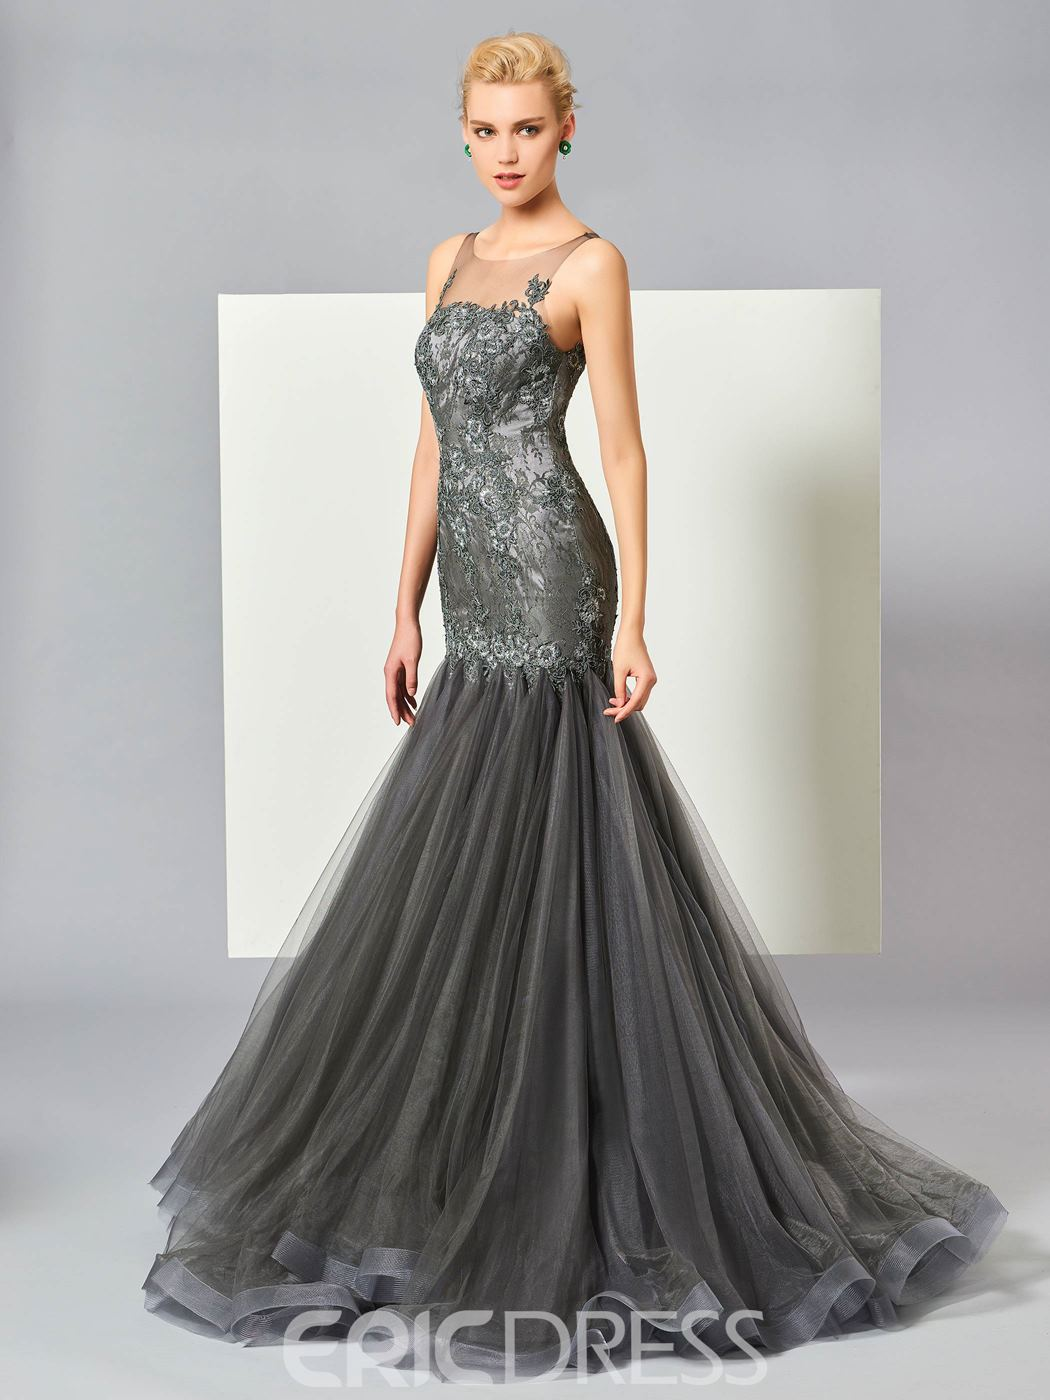 Ericdress Mermaid Bateau Neck Lace Applique Evening Dress With Sweep Train